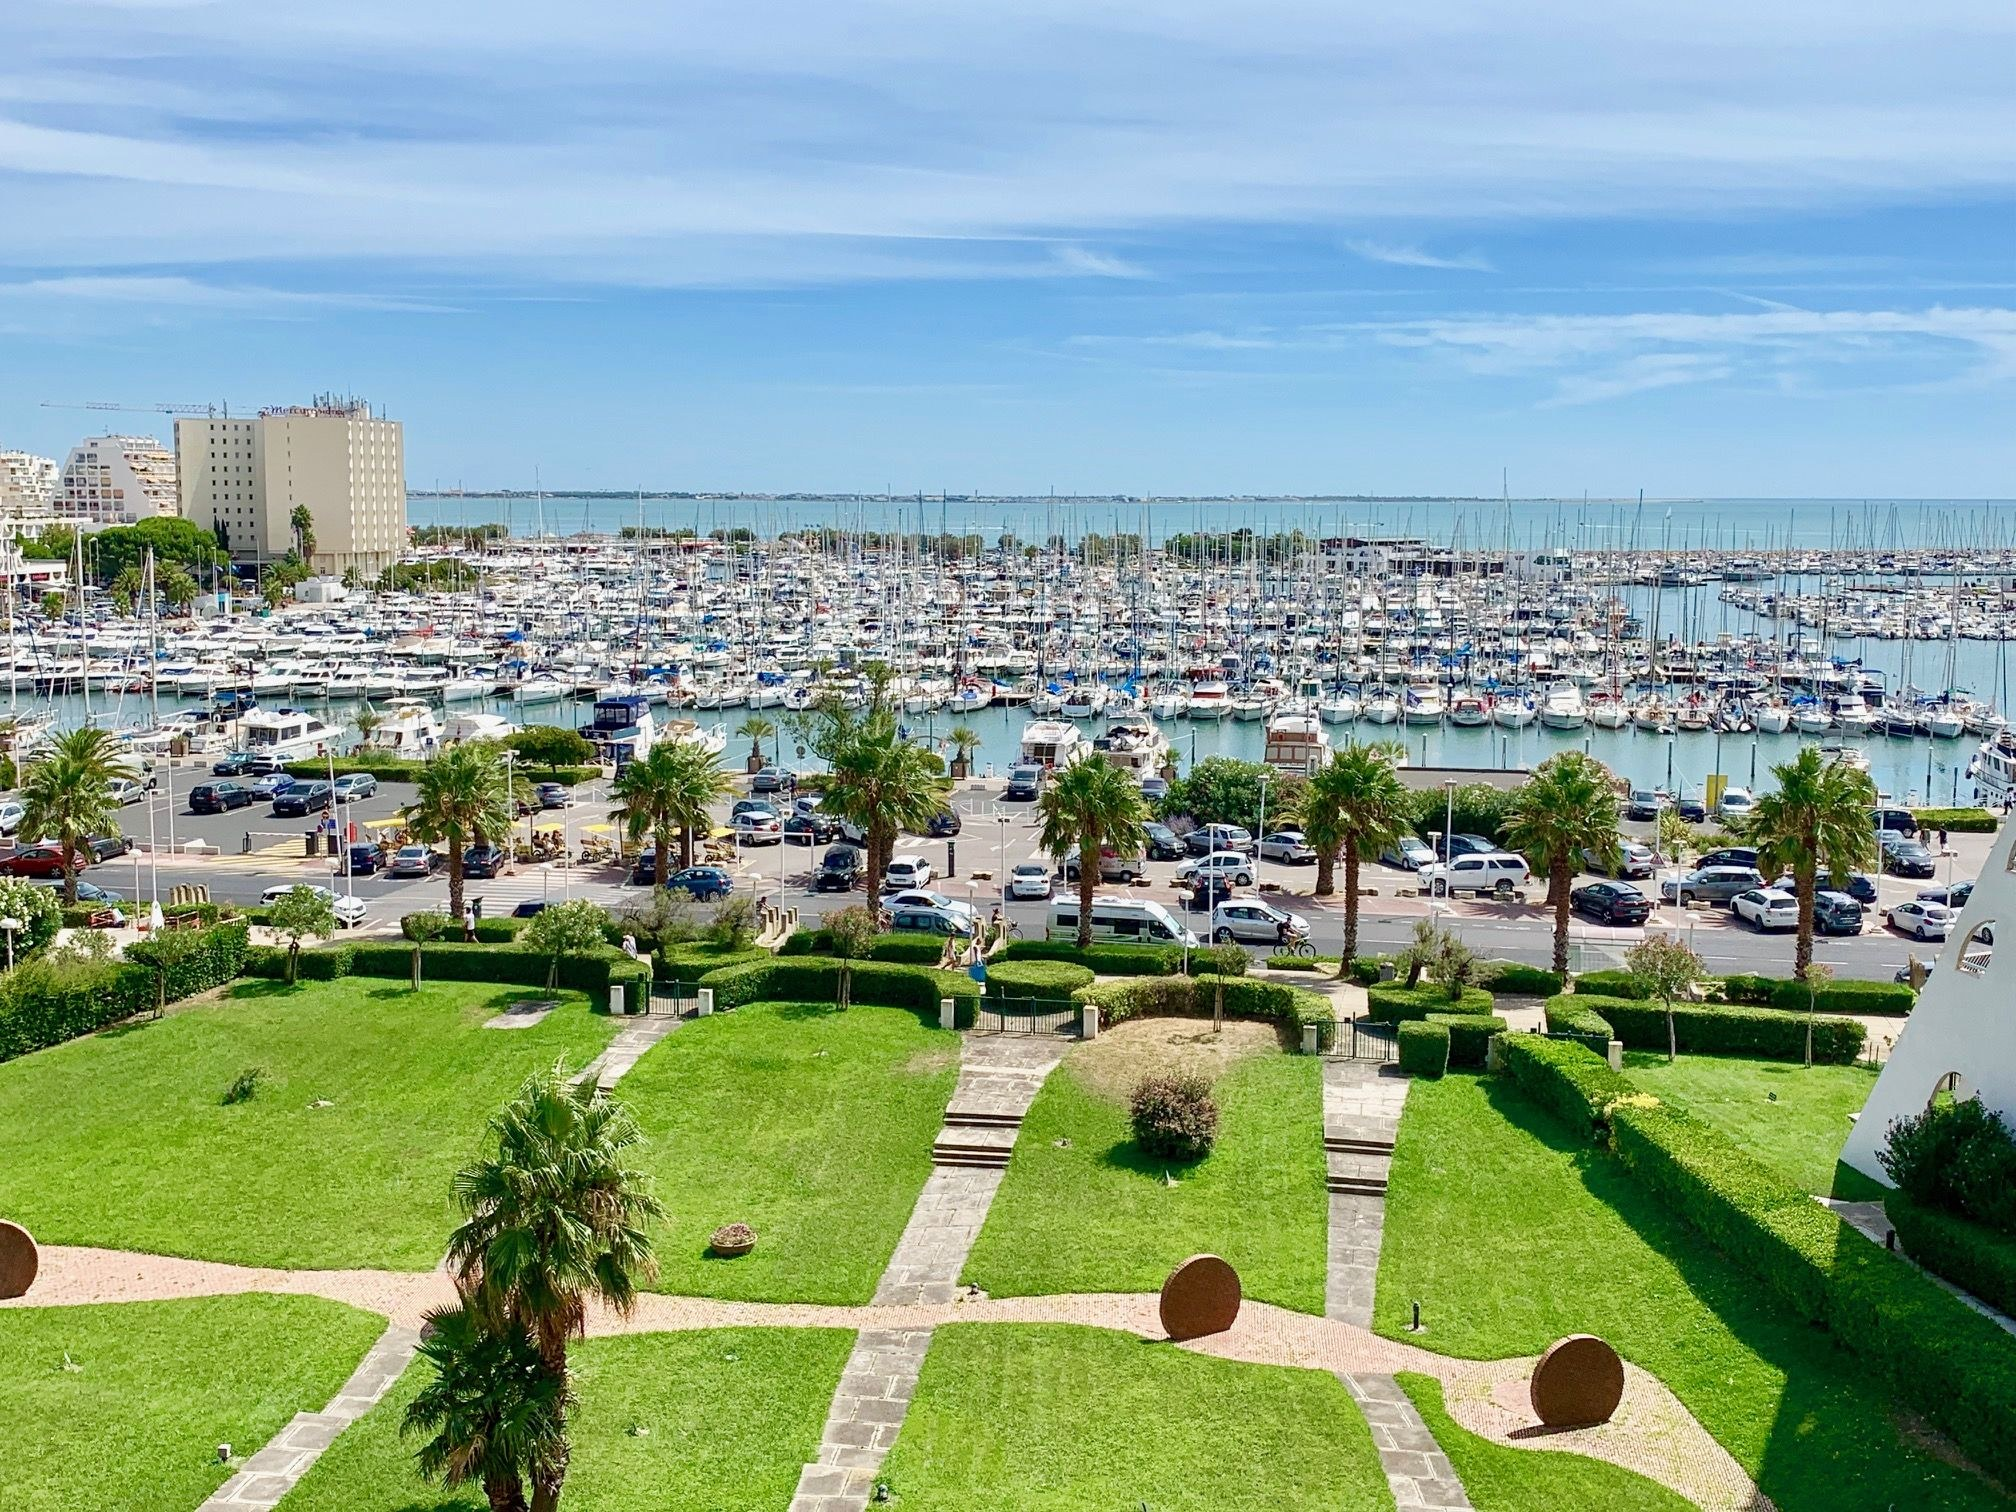 LA GRANDE MOTTE PYRAMIDES IMMOBILIER STUDIO VUE PORT MER PARKING PLAGE ASCENSEUR